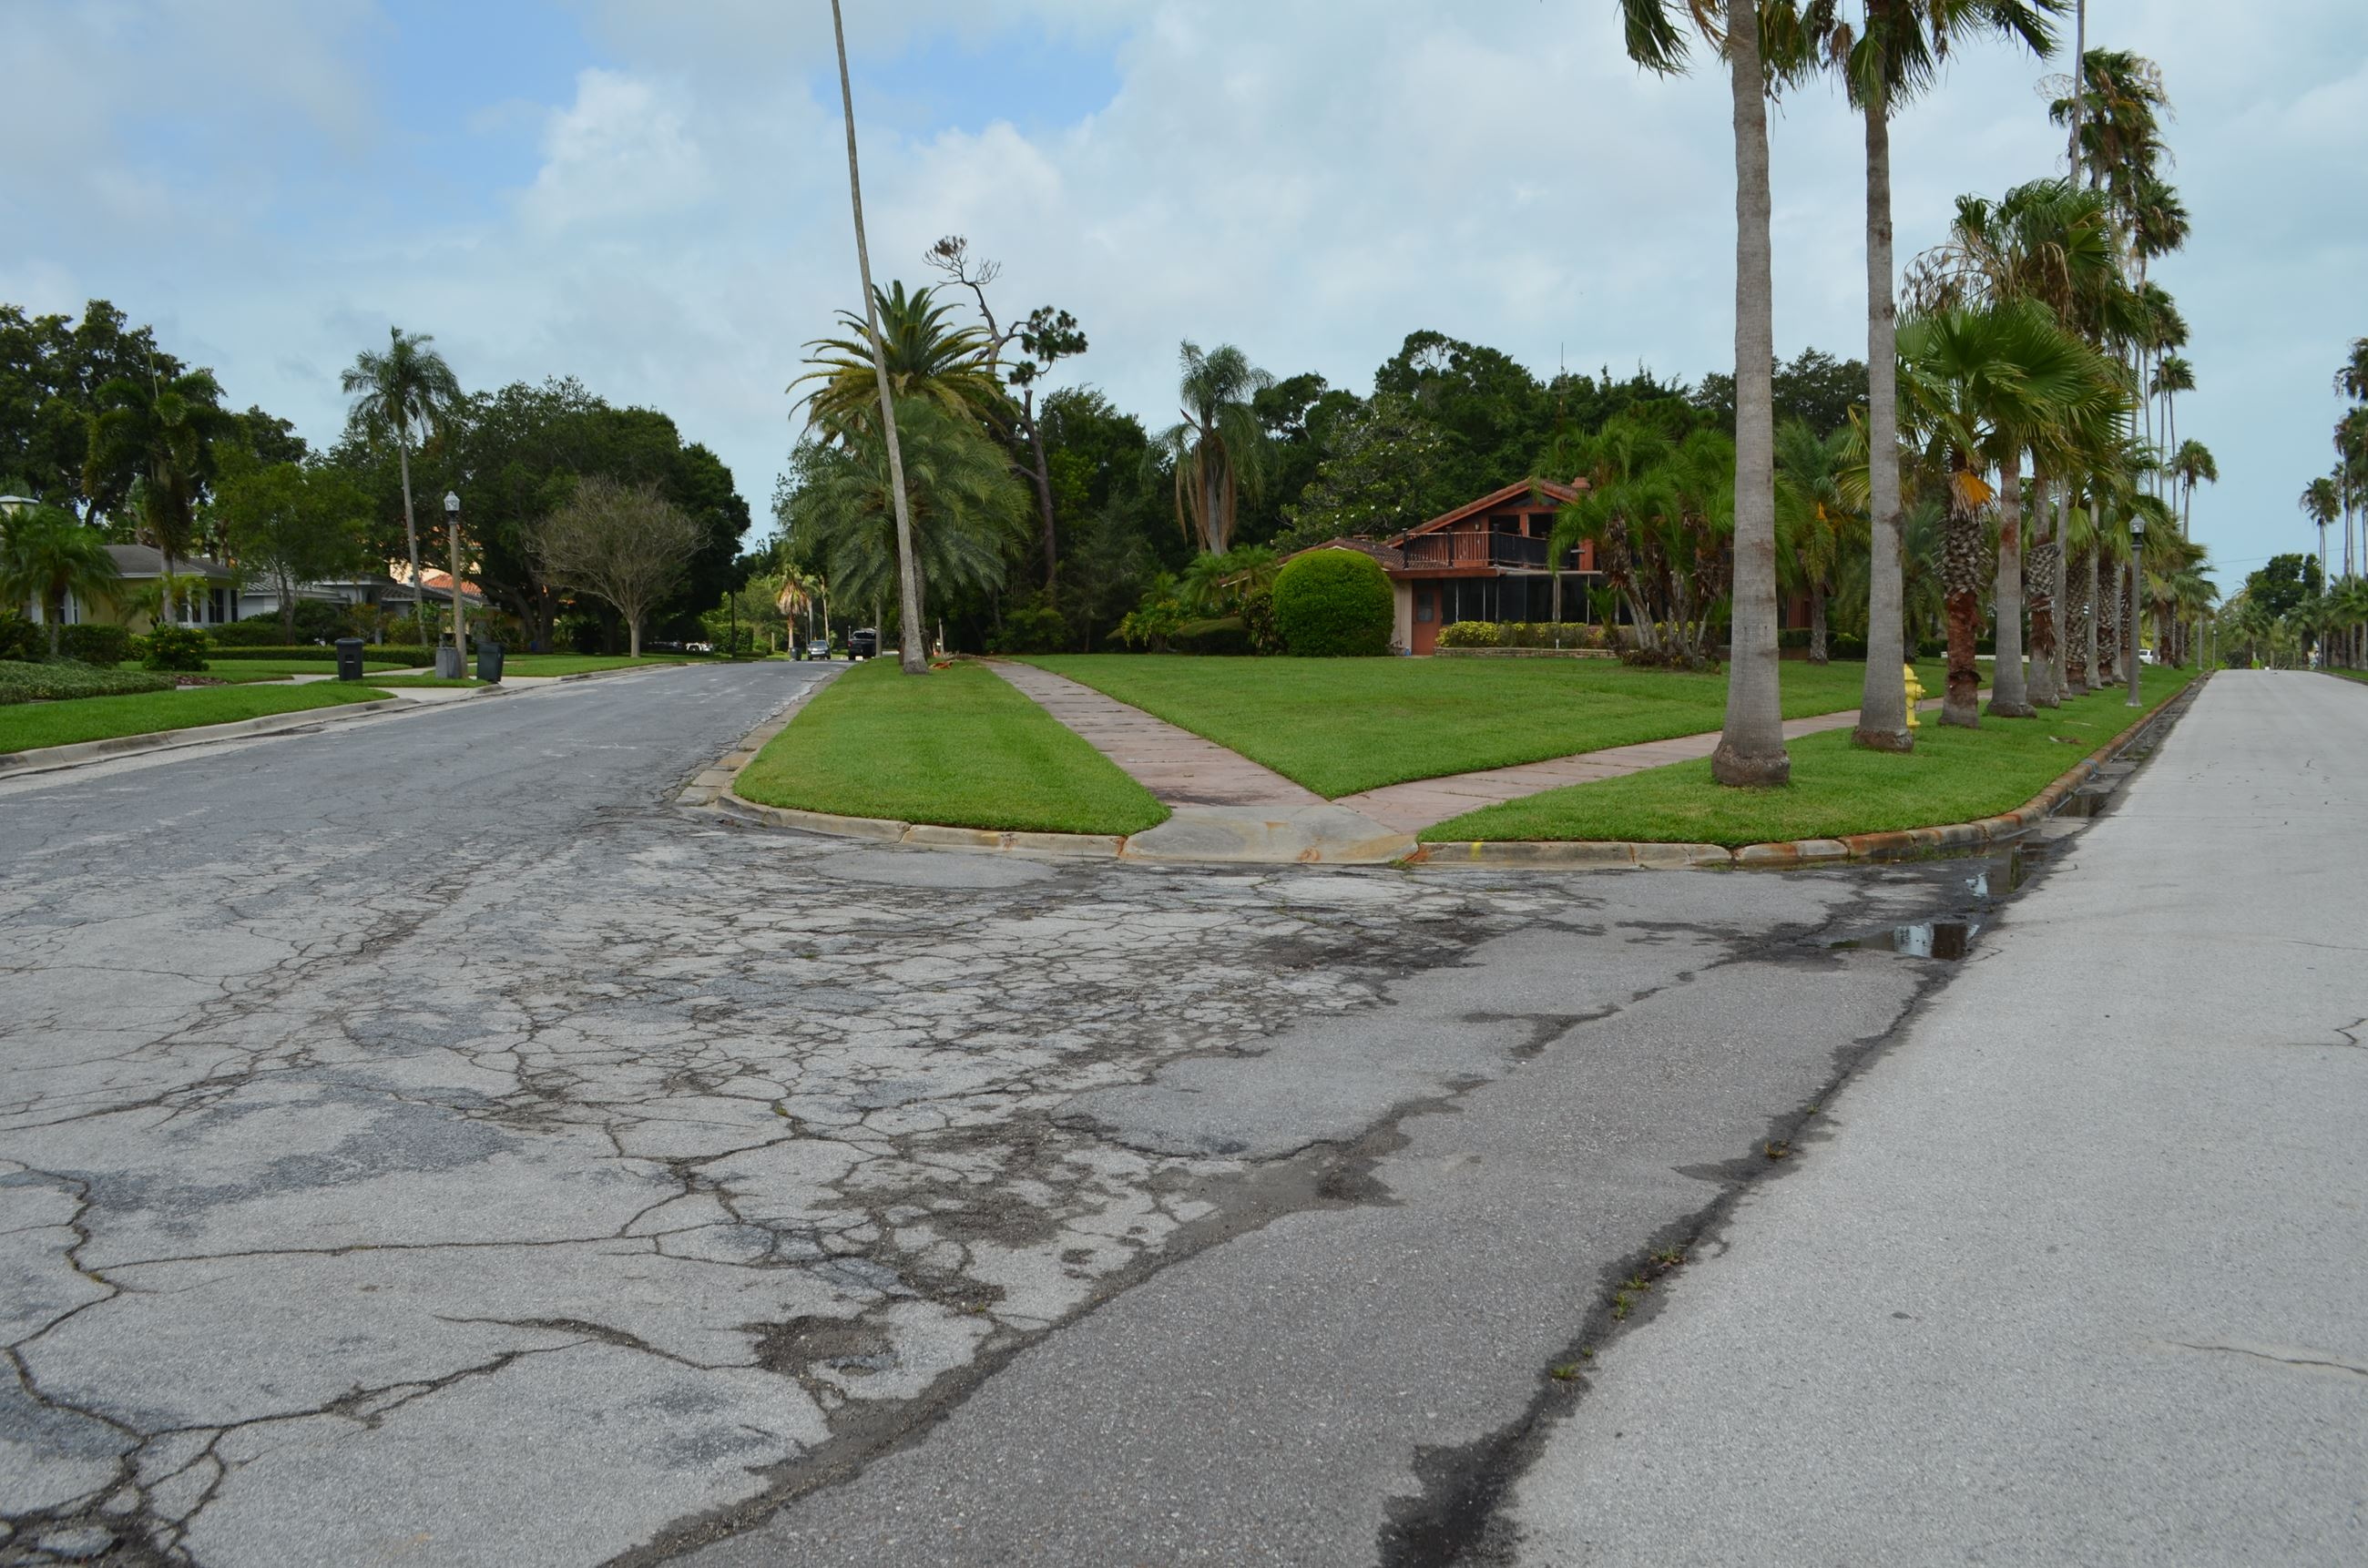 A view of Palmetto Road from Bayview Drive facing east shows the poor condition of the roadway